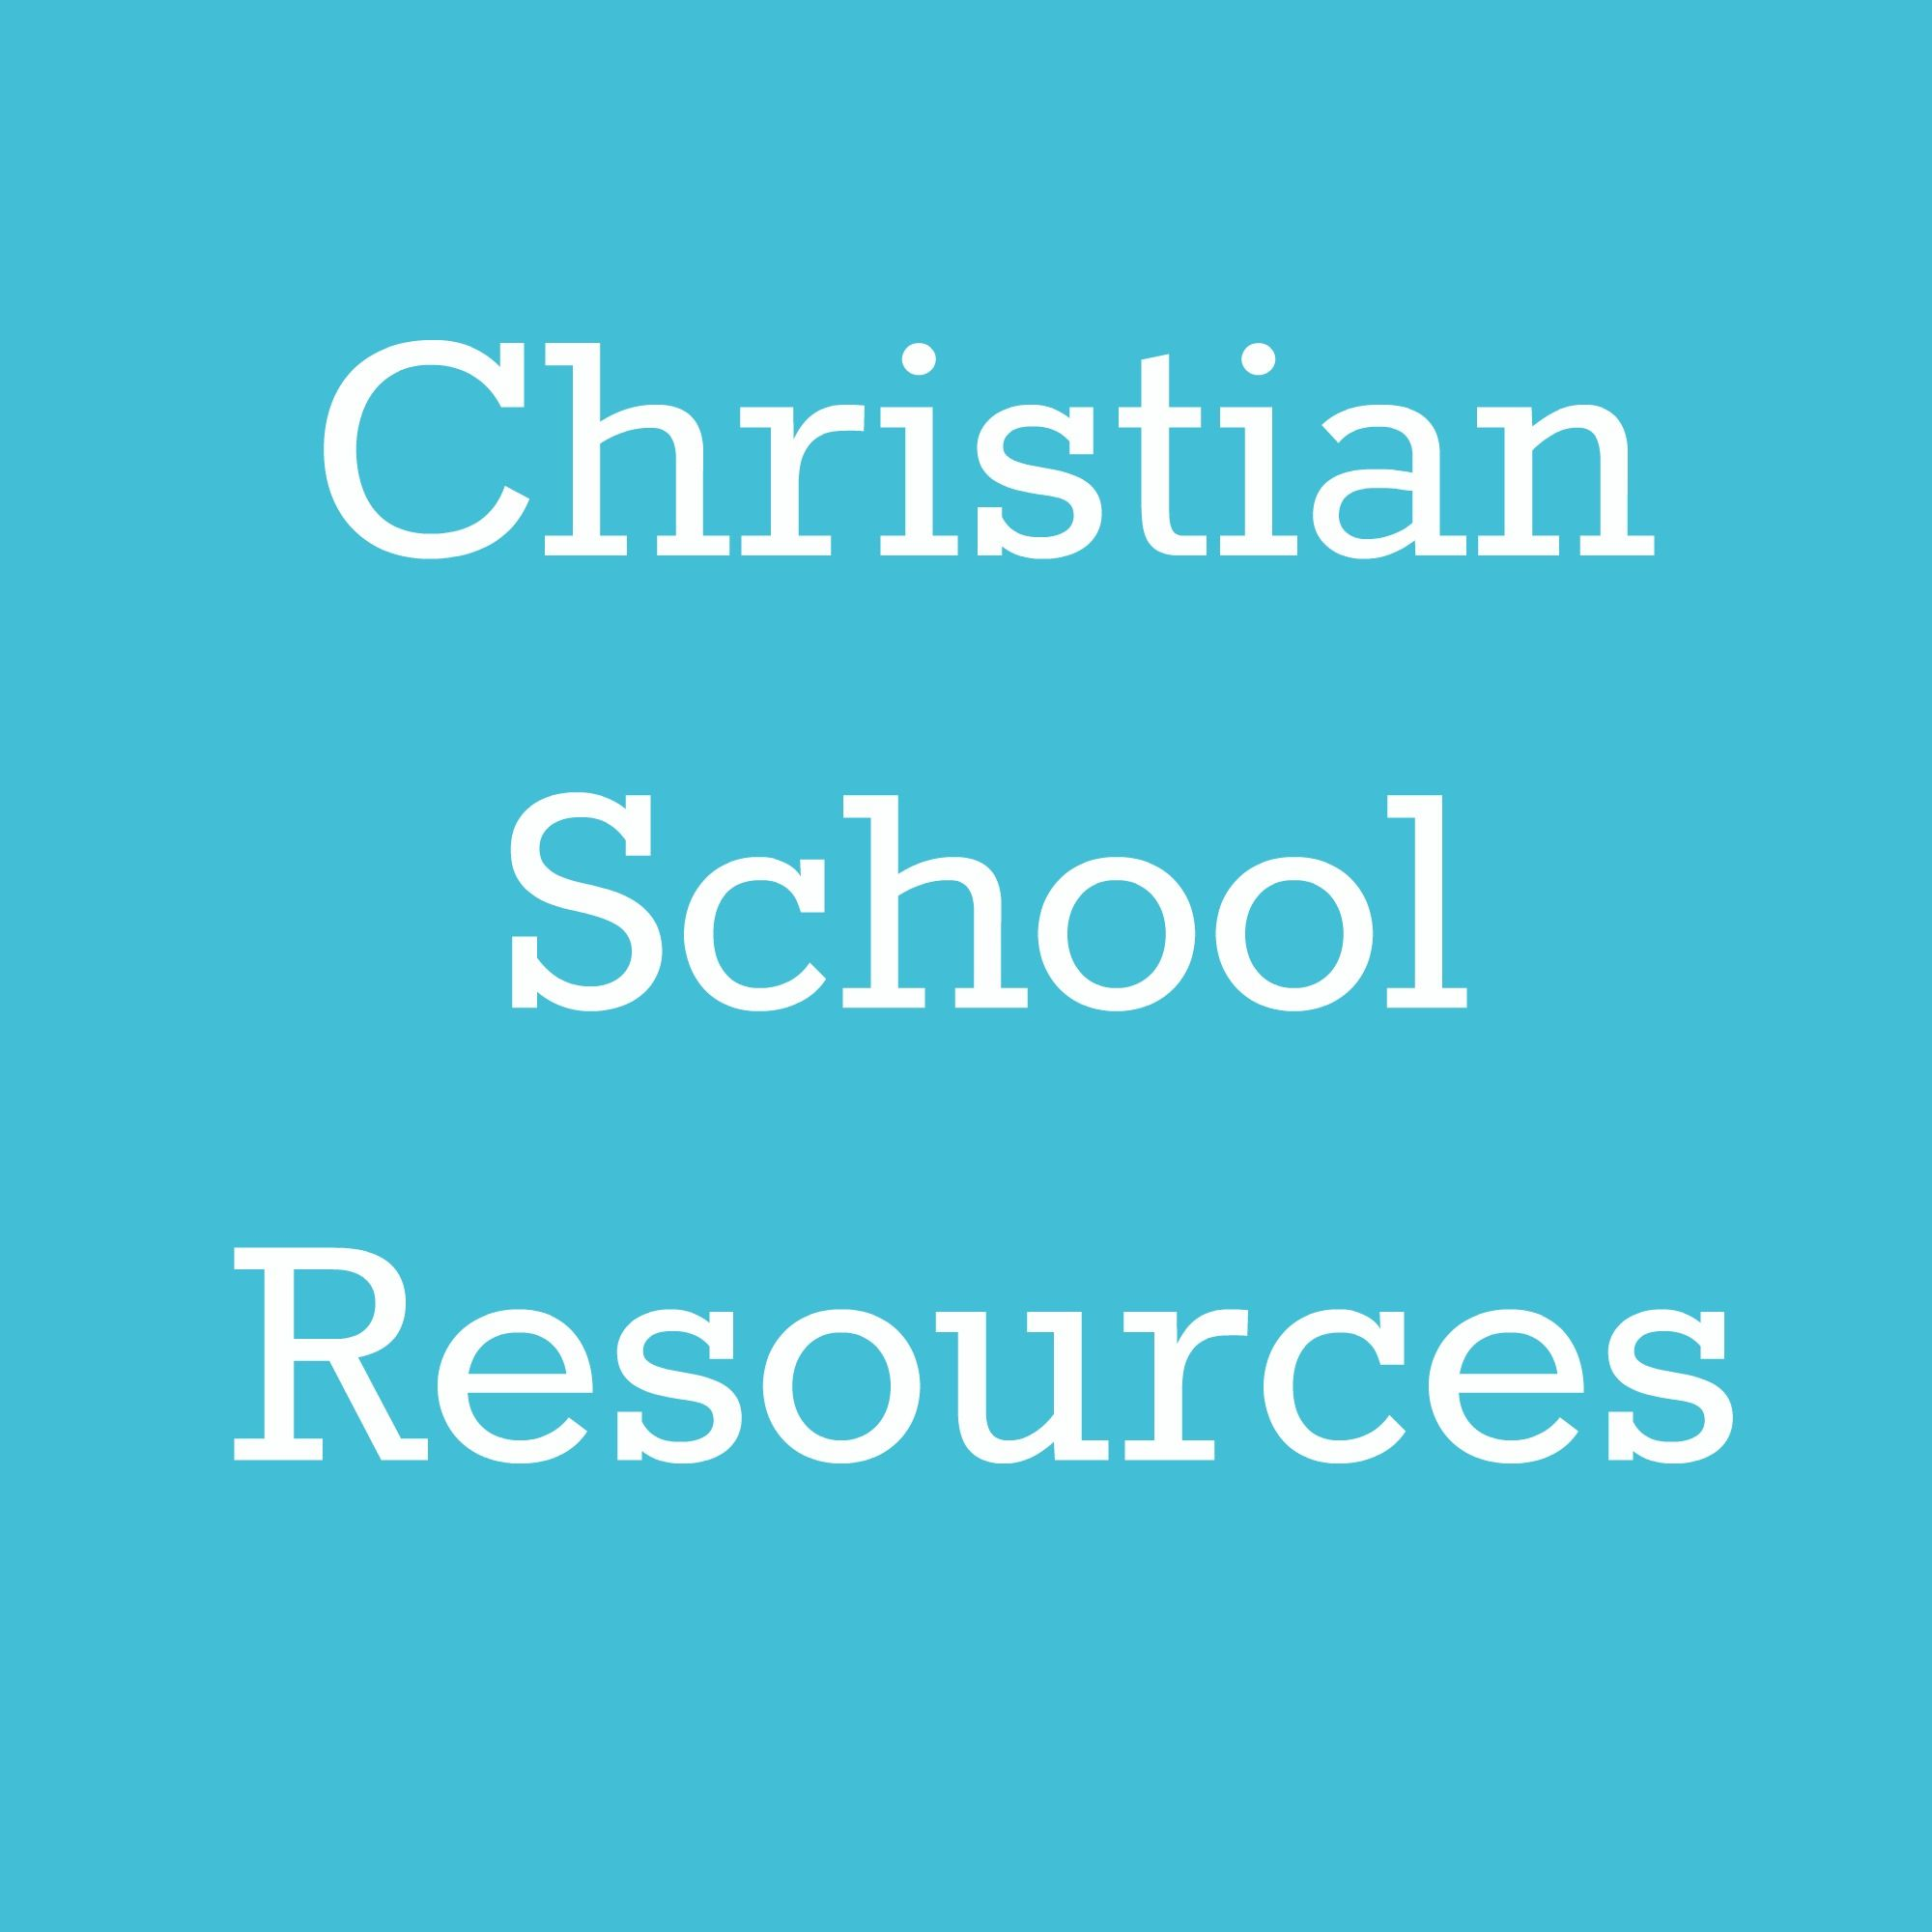 Christian School Resources And Bible Verse Themed